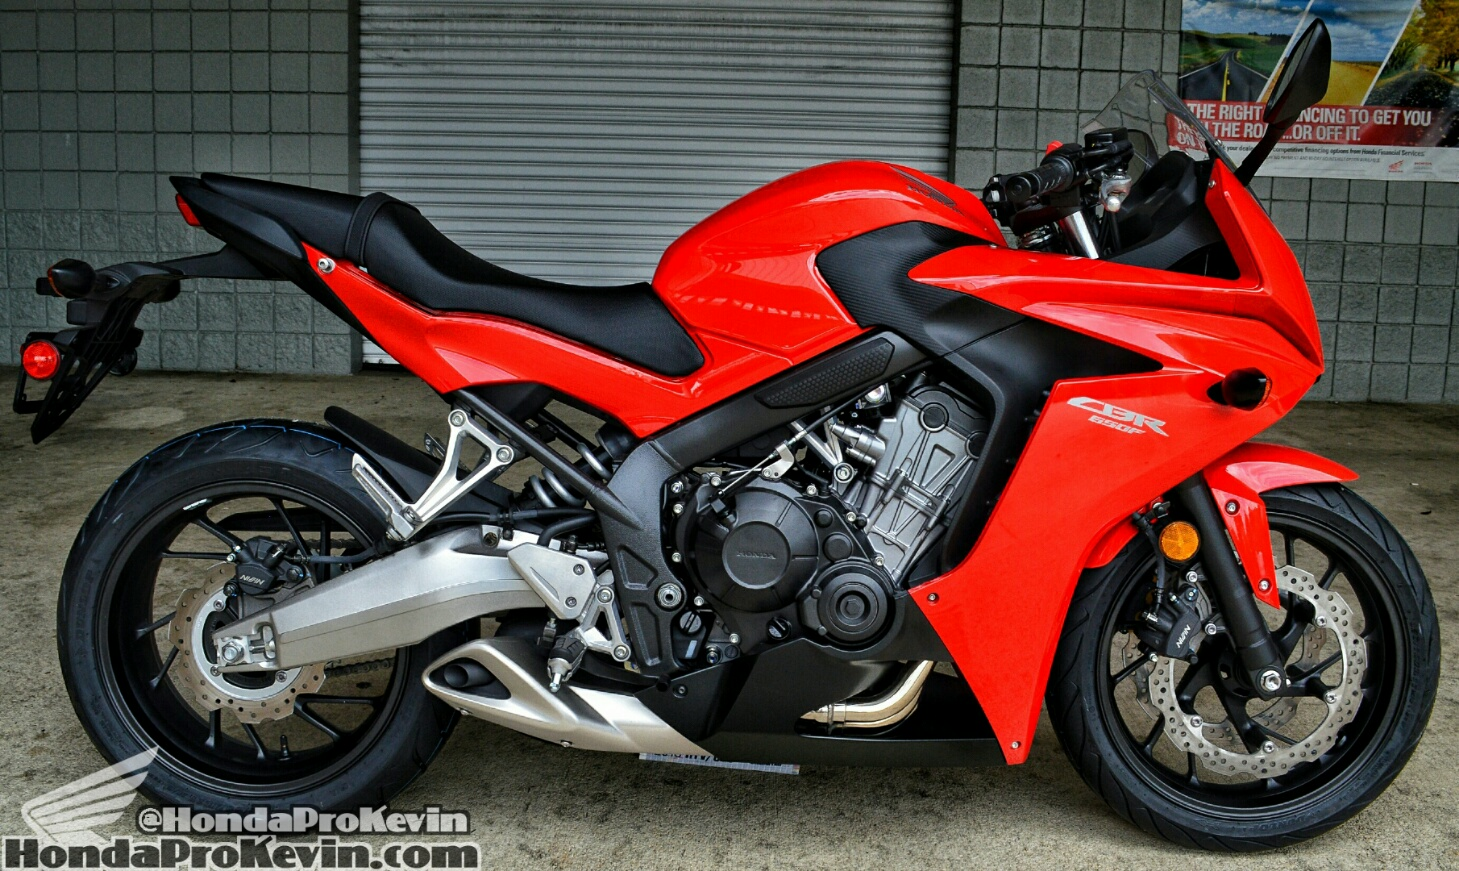 2015 honda cbr650f review specs pictures videos. Black Bedroom Furniture Sets. Home Design Ideas